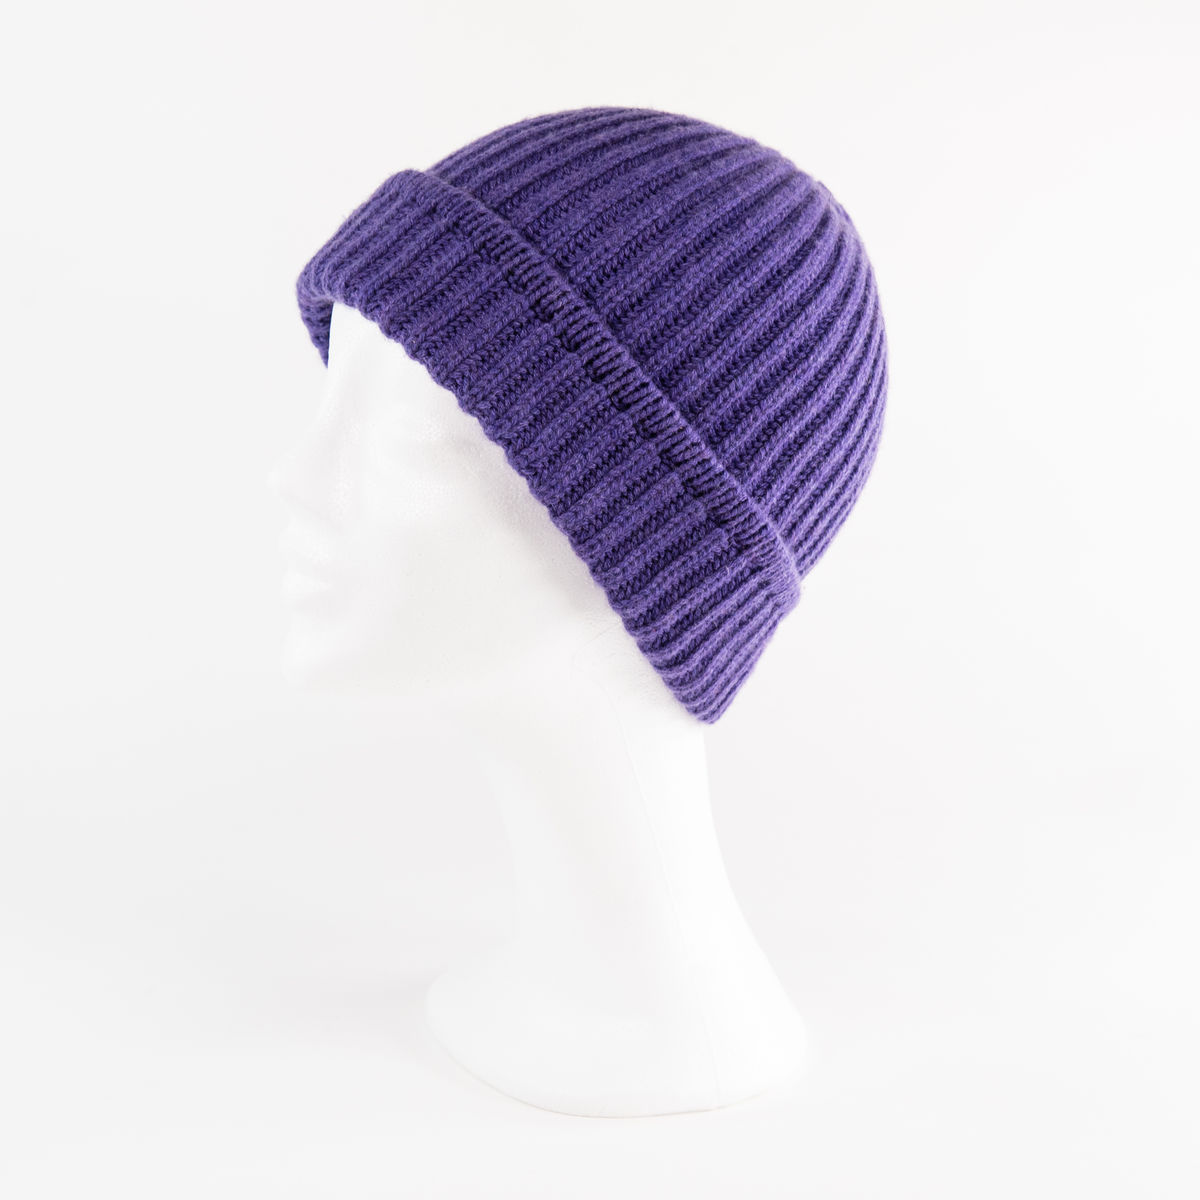 Classic Ribbed Beanie Cuff - PURPLE :) - product images  of